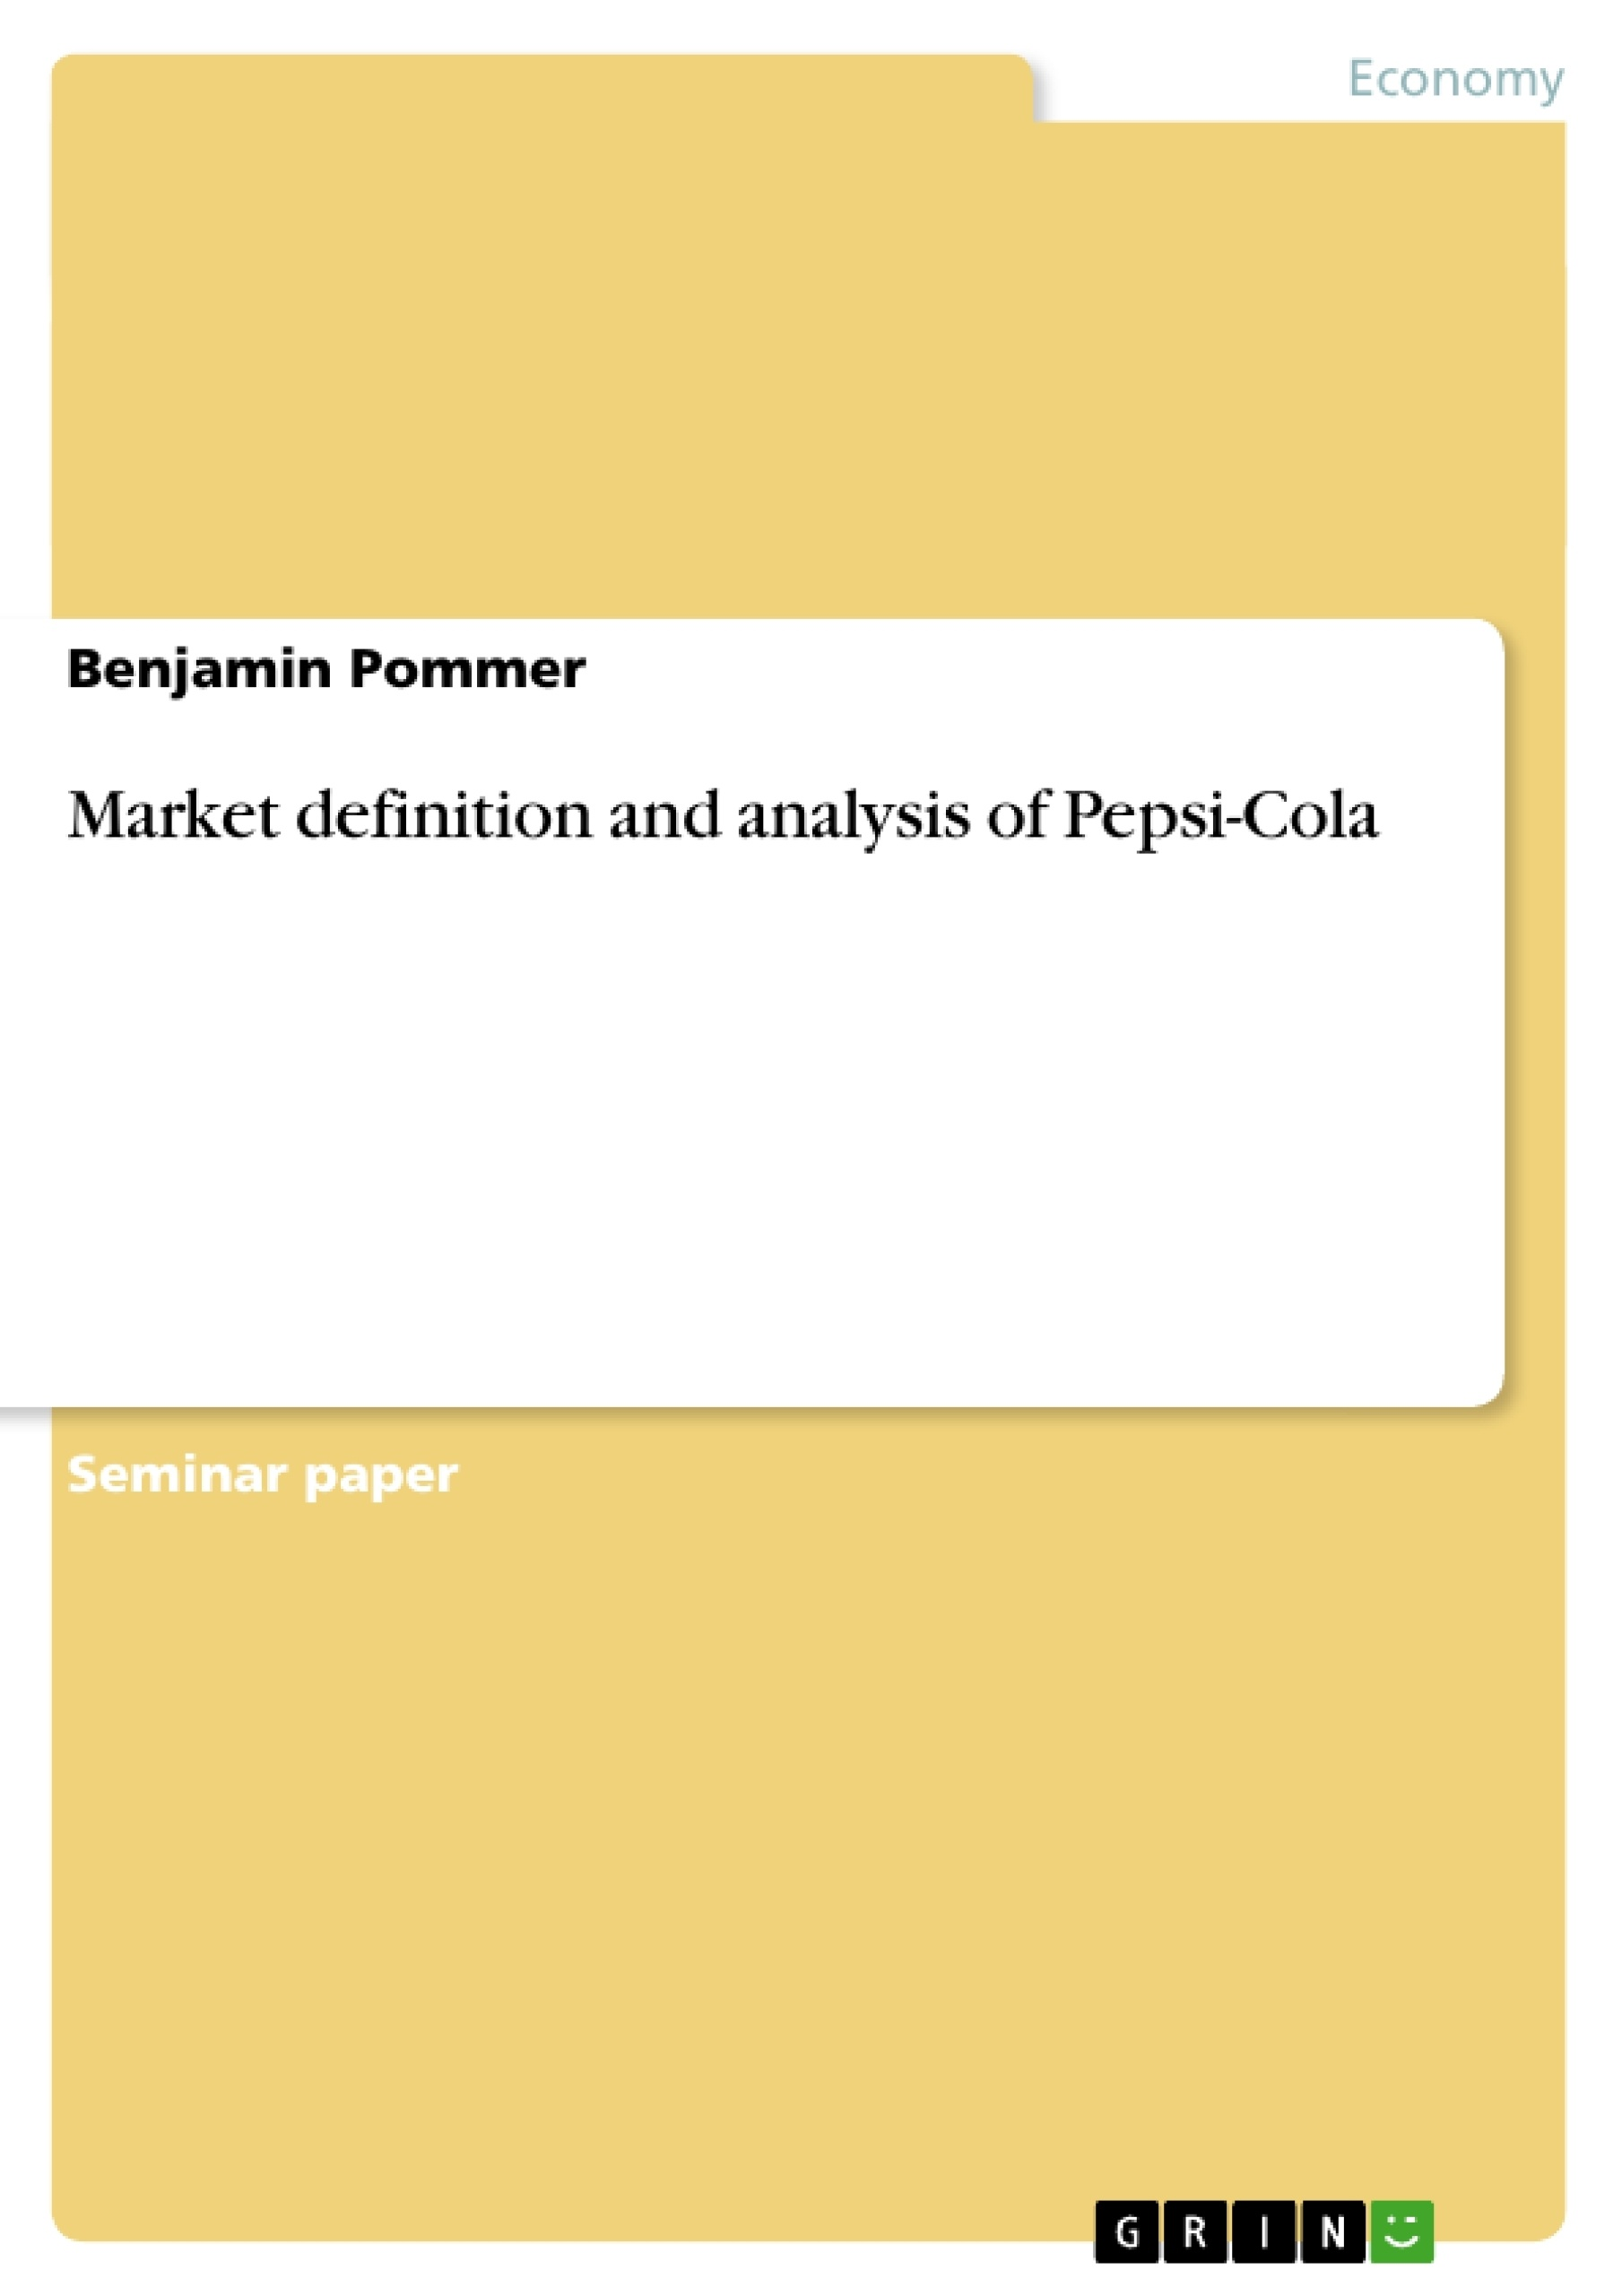 market definition and analysis of pepsi cola publish your market definition and analysis of pepsi cola publish your master s thesis bachelor s thesis essay or term paper